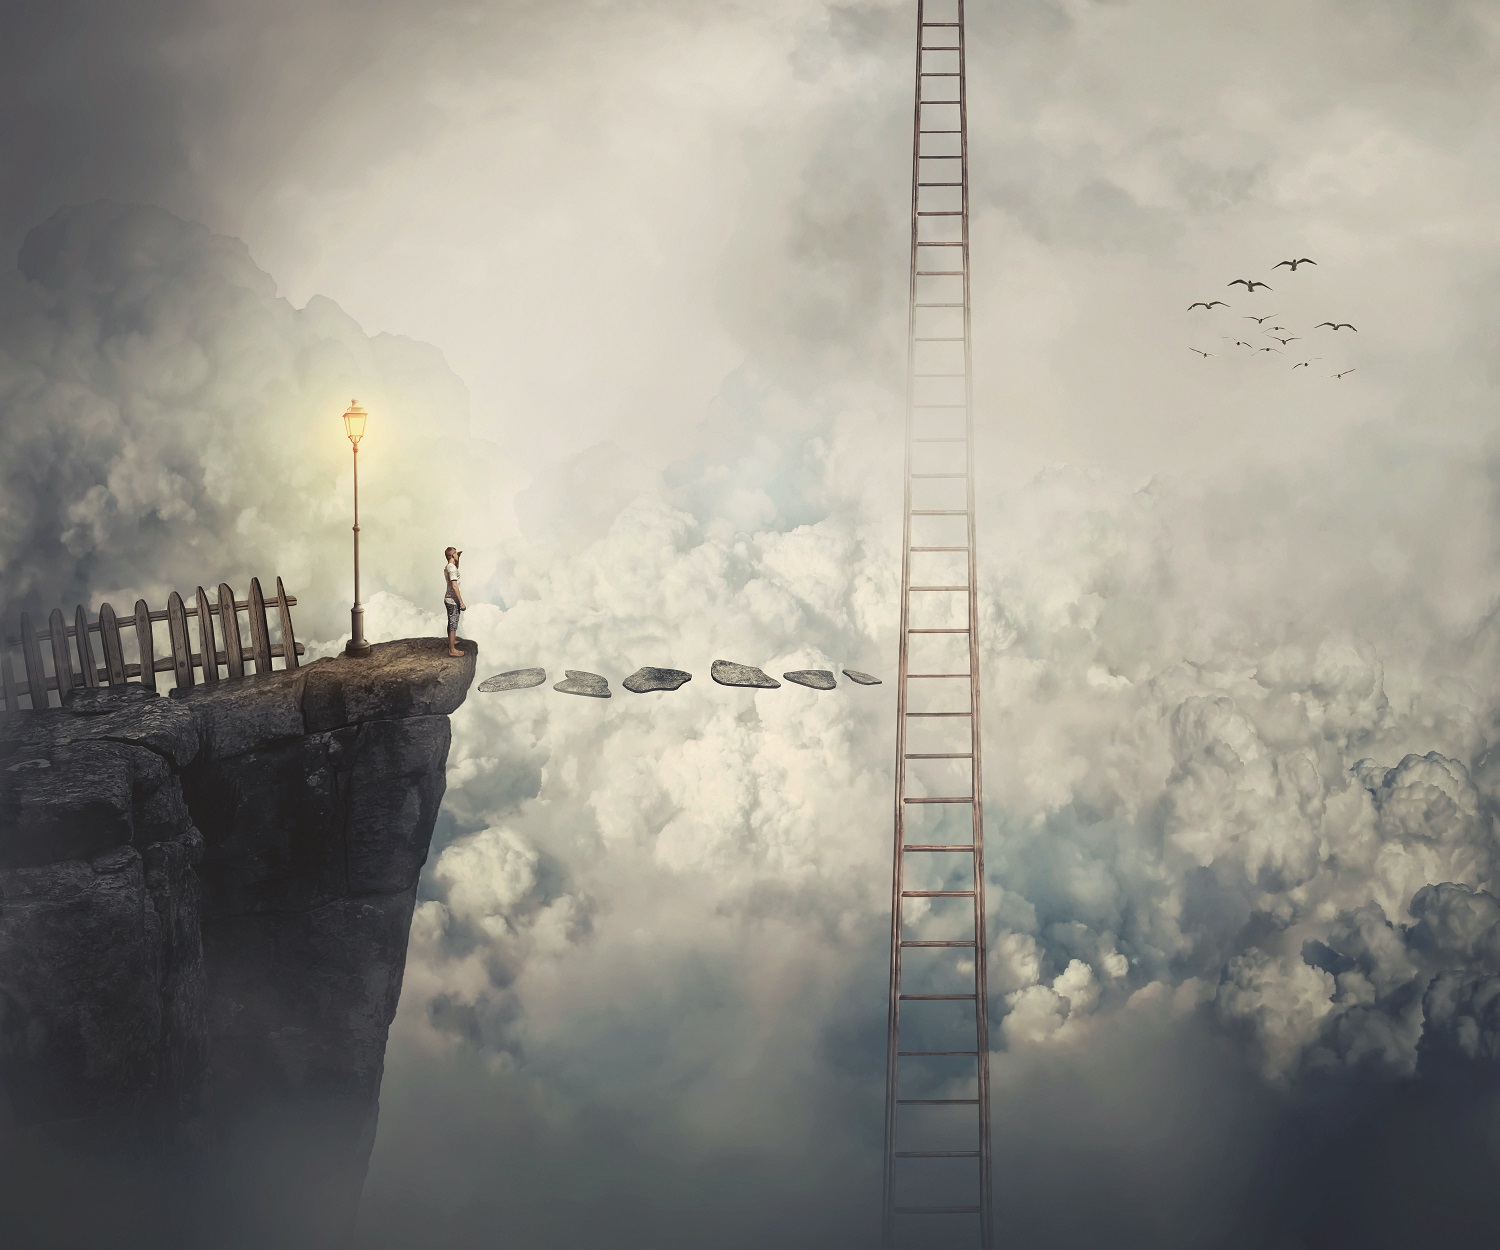 A person stands on a precipice looking out into an abyss of clouds with a single ladder leading toward the sky about halfway across the chasm.